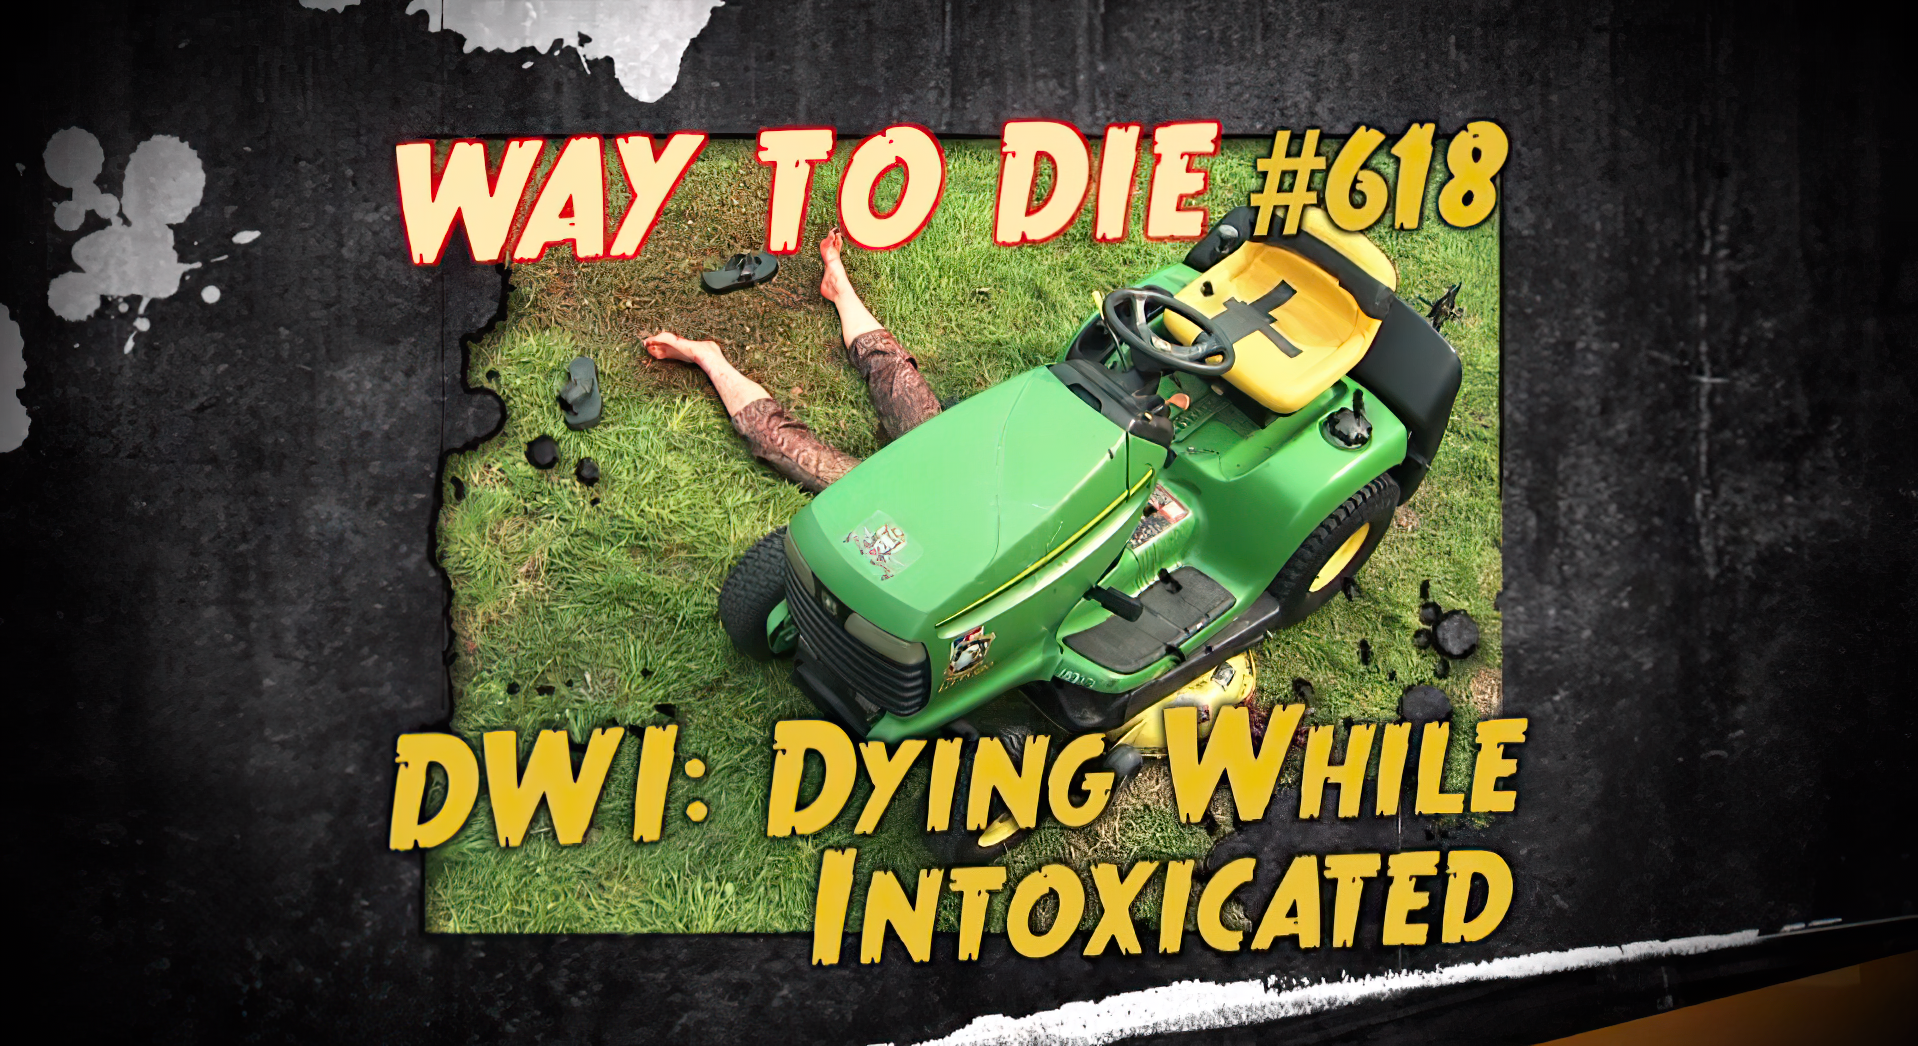 DWI: Dying While Intoxicated